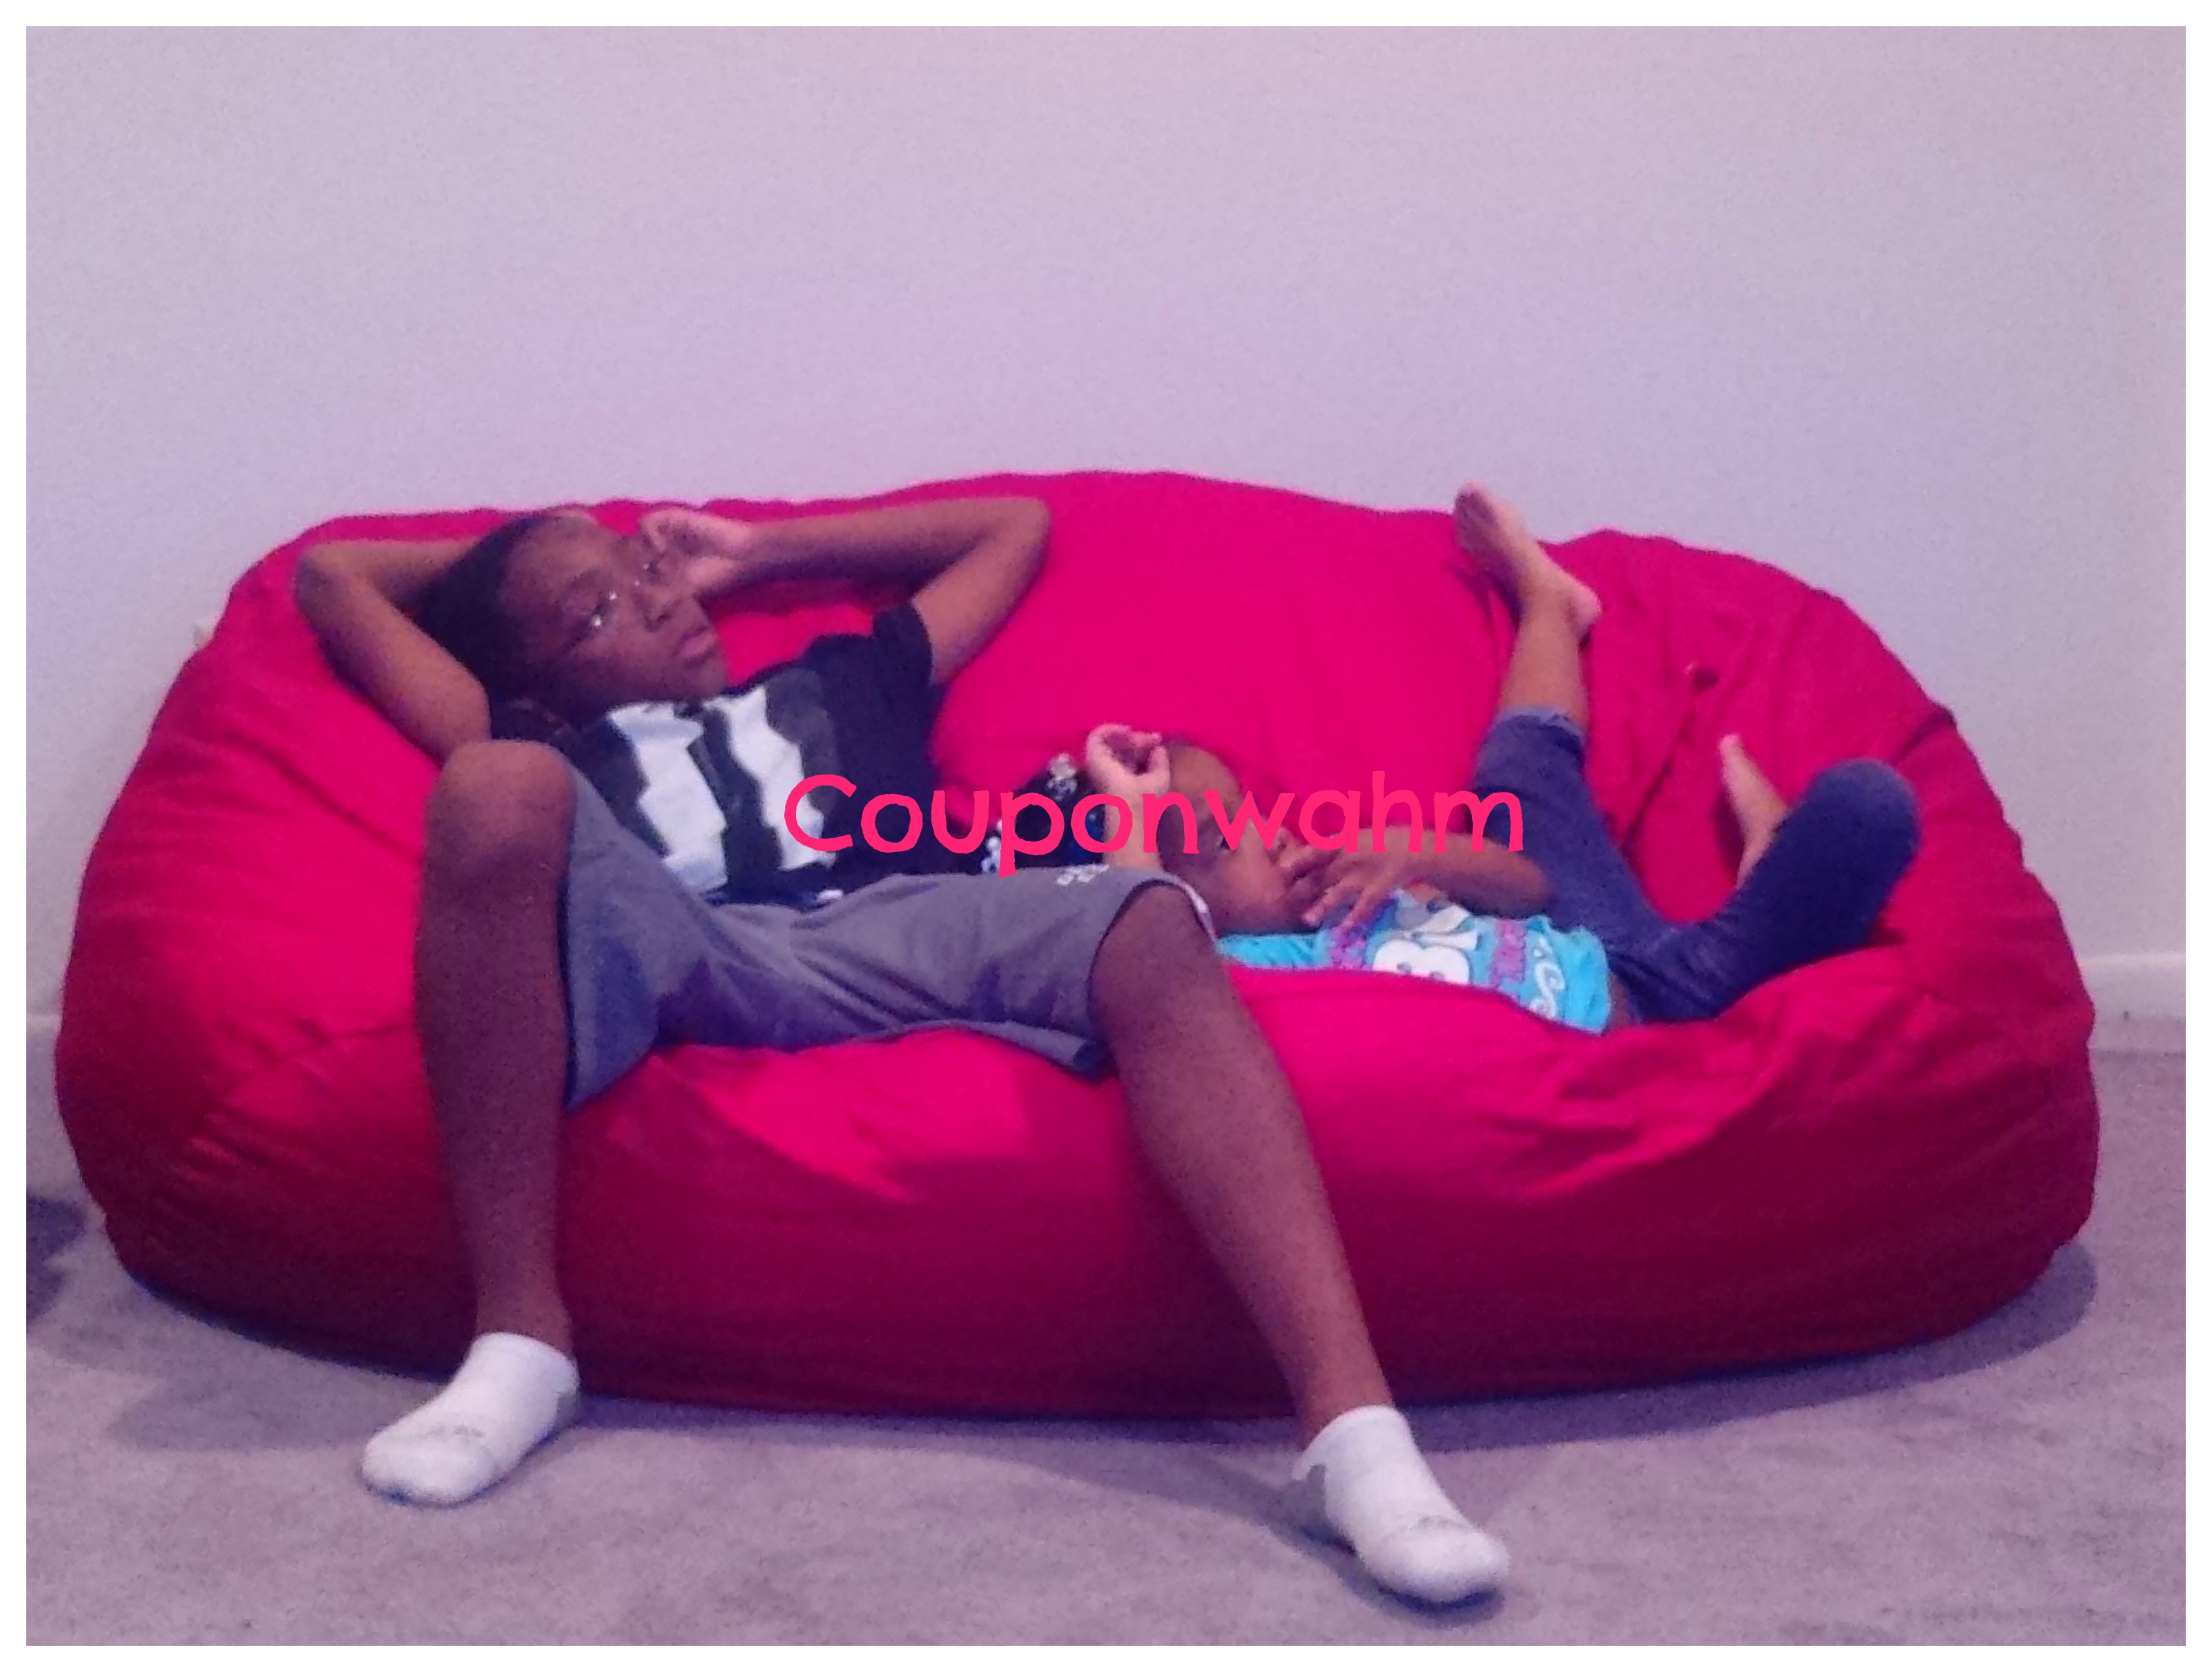 The Bean Bag Chair Outlet: Lounging At It's Best  #reviews Shoppers #giftguide